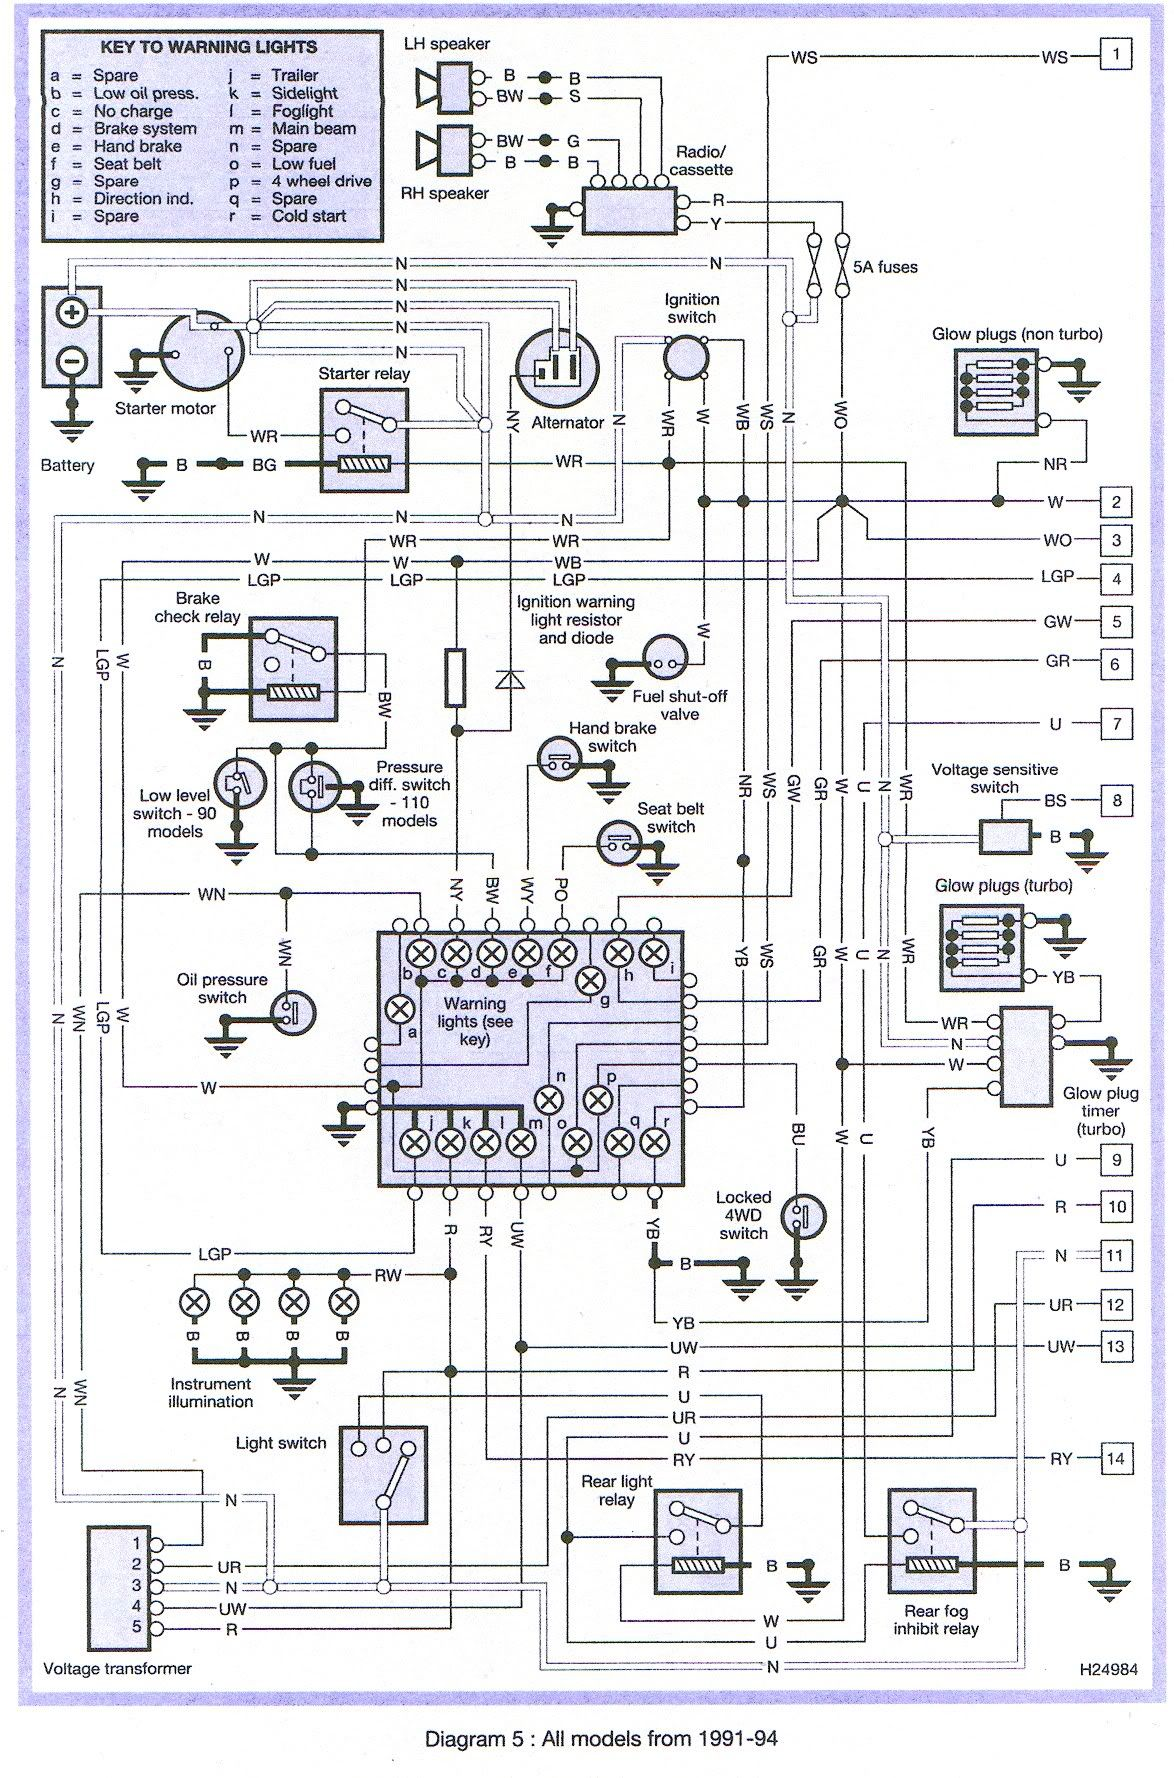 07629544bfff38ad2881b2c21312c6e6 land rover discovery wiring diagram manual repair with engine land rover series 3 wiring diagram at reclaimingppi.co